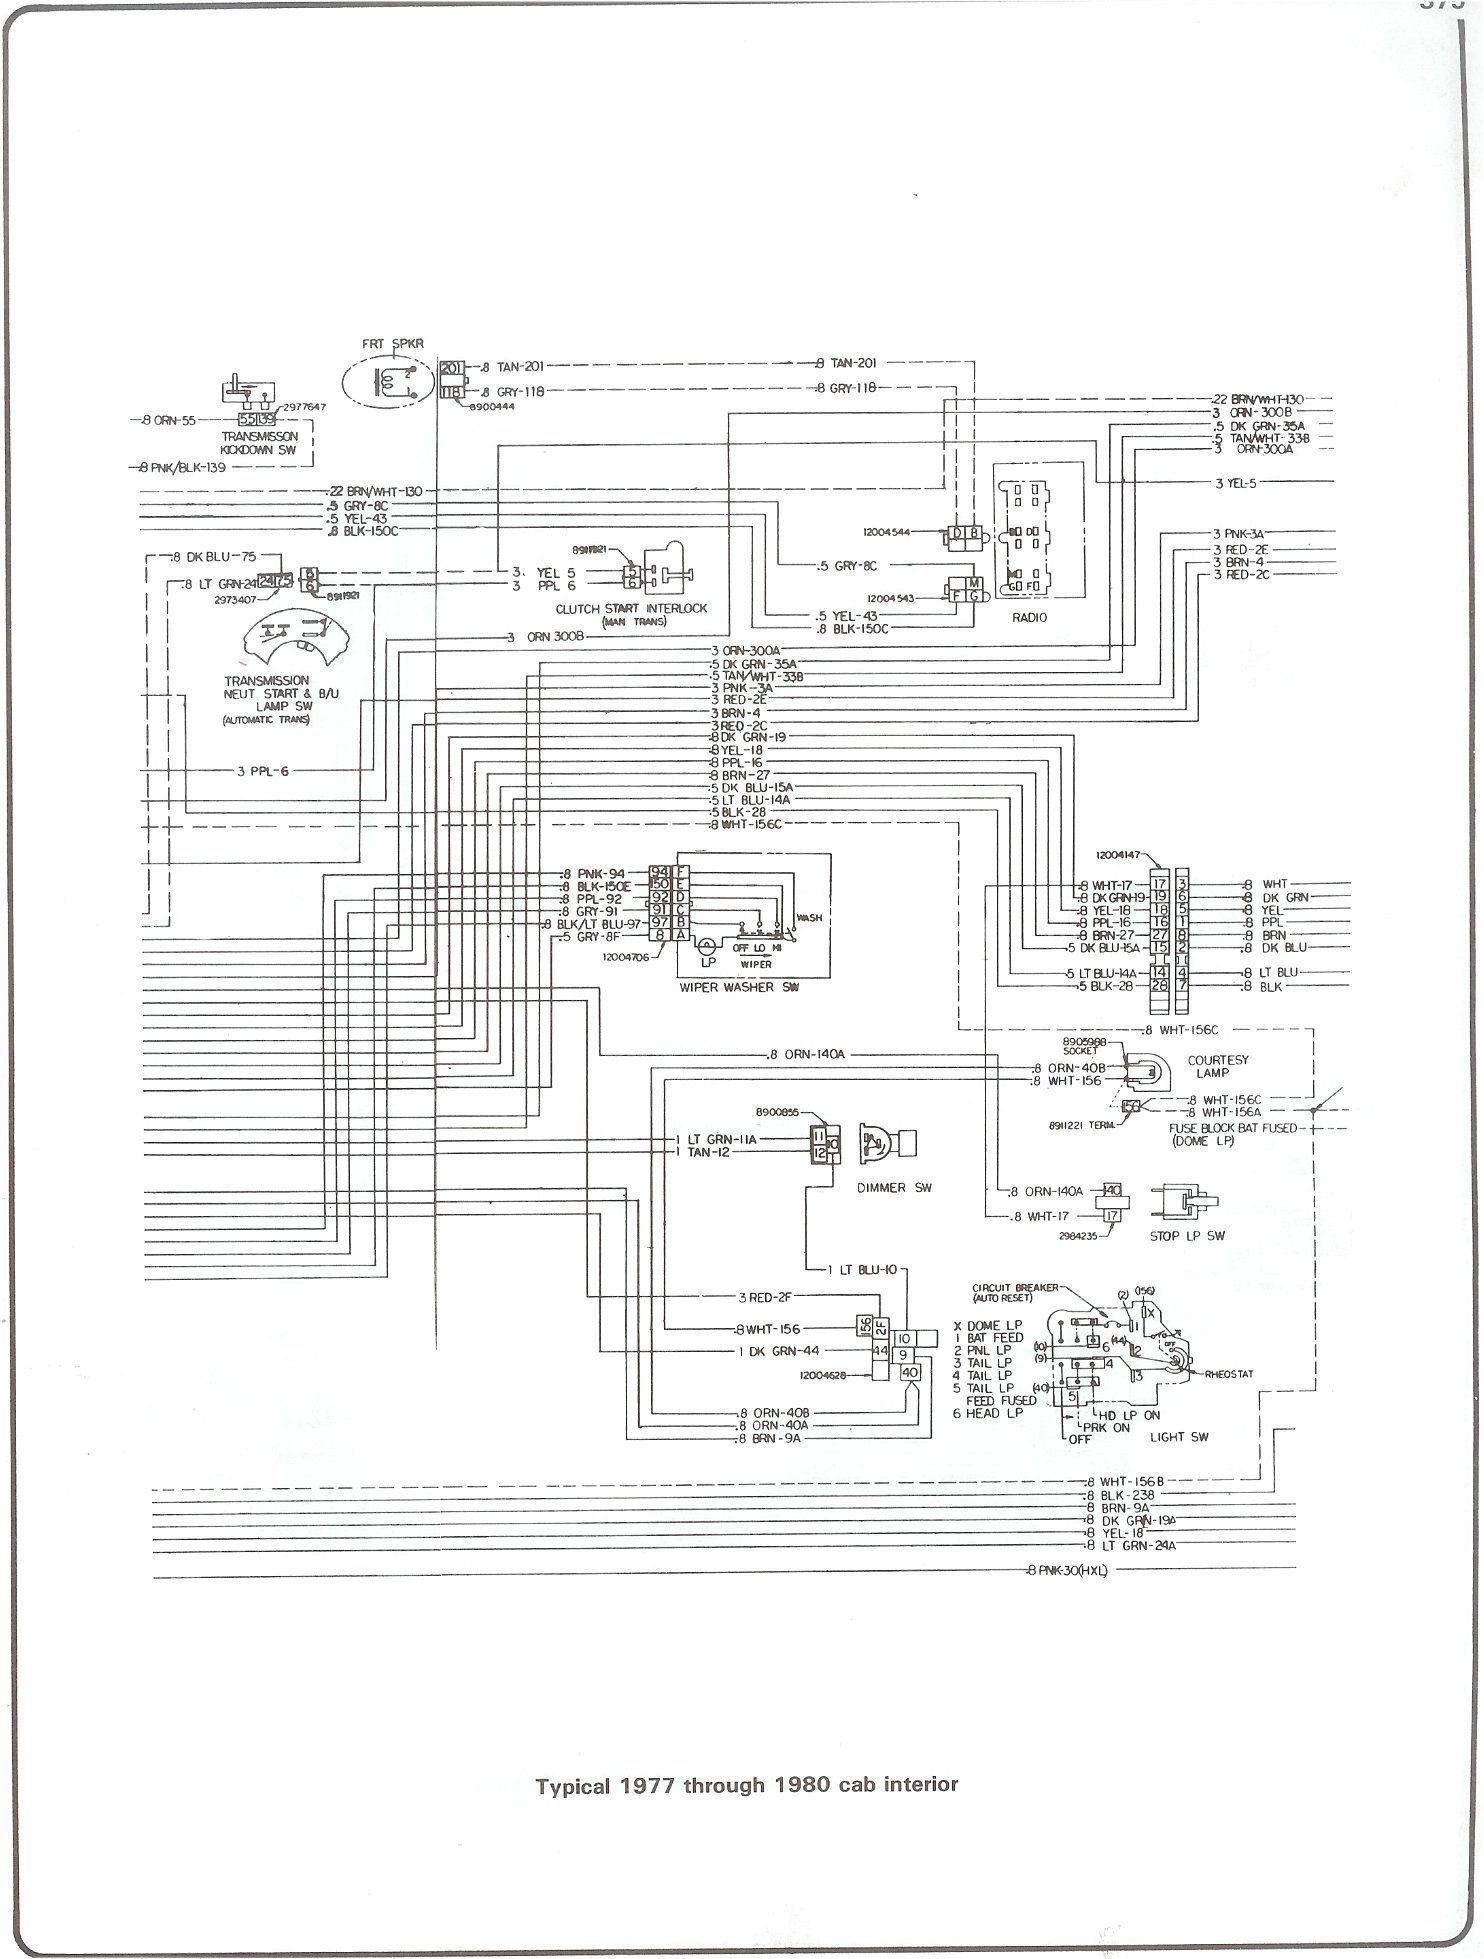 77 80_cab_inter complete 73 87 wiring diagrams 1987 chevy wiring diagram at gsmportal.co